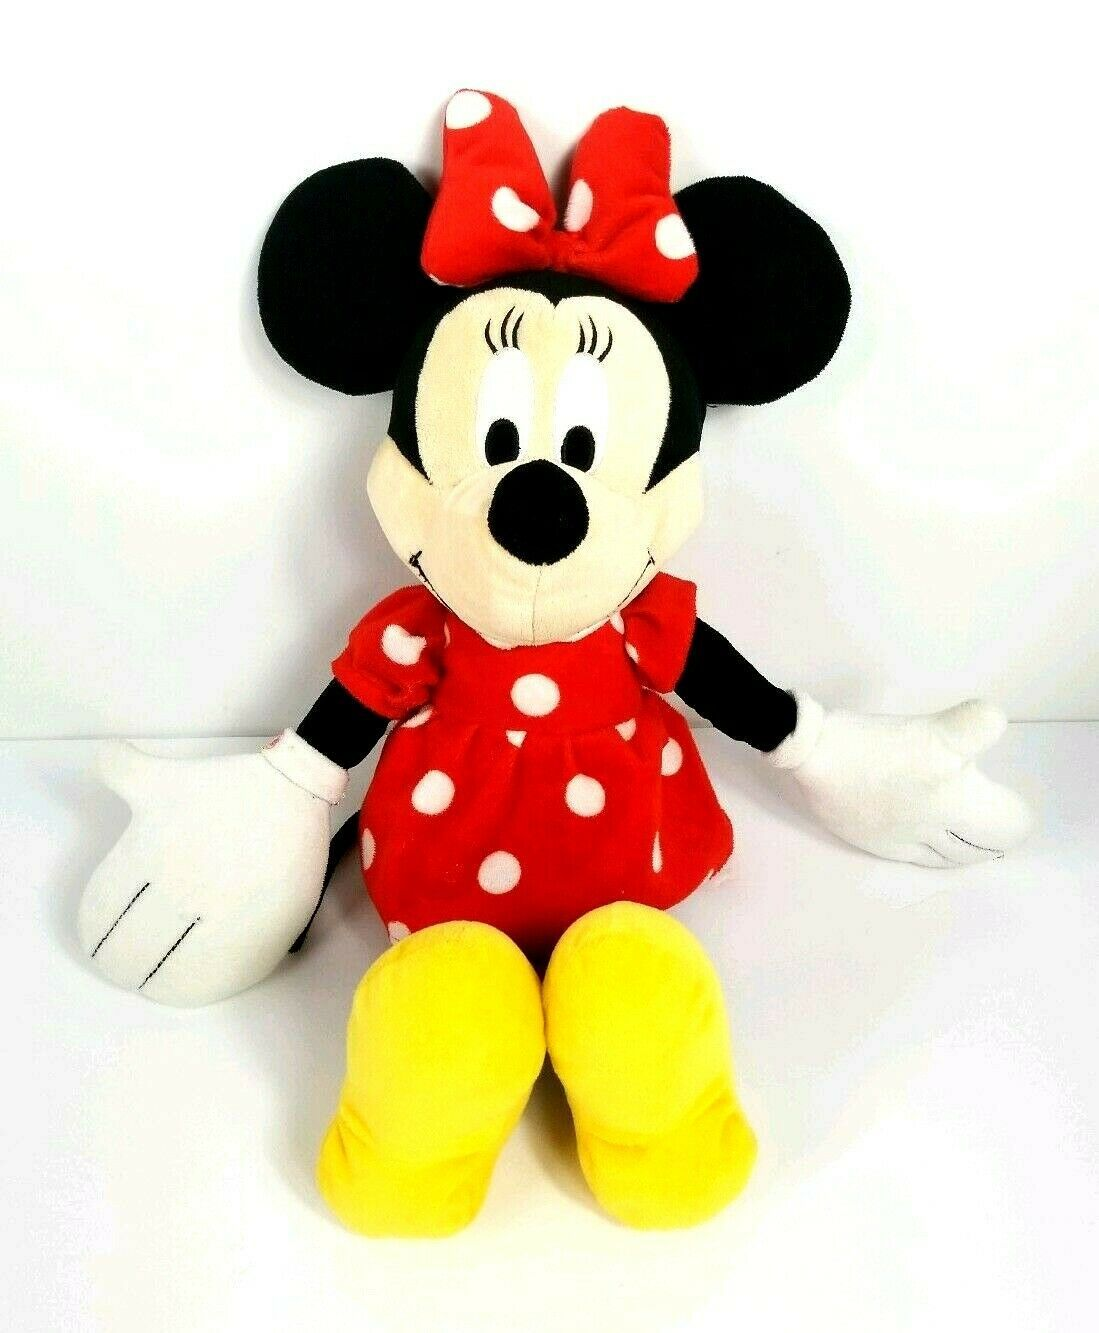 "Primary image for Disney Minnie Mouse Plush Red Polka Dot Dress Jay Franco Sons Inc 18"" Toy"